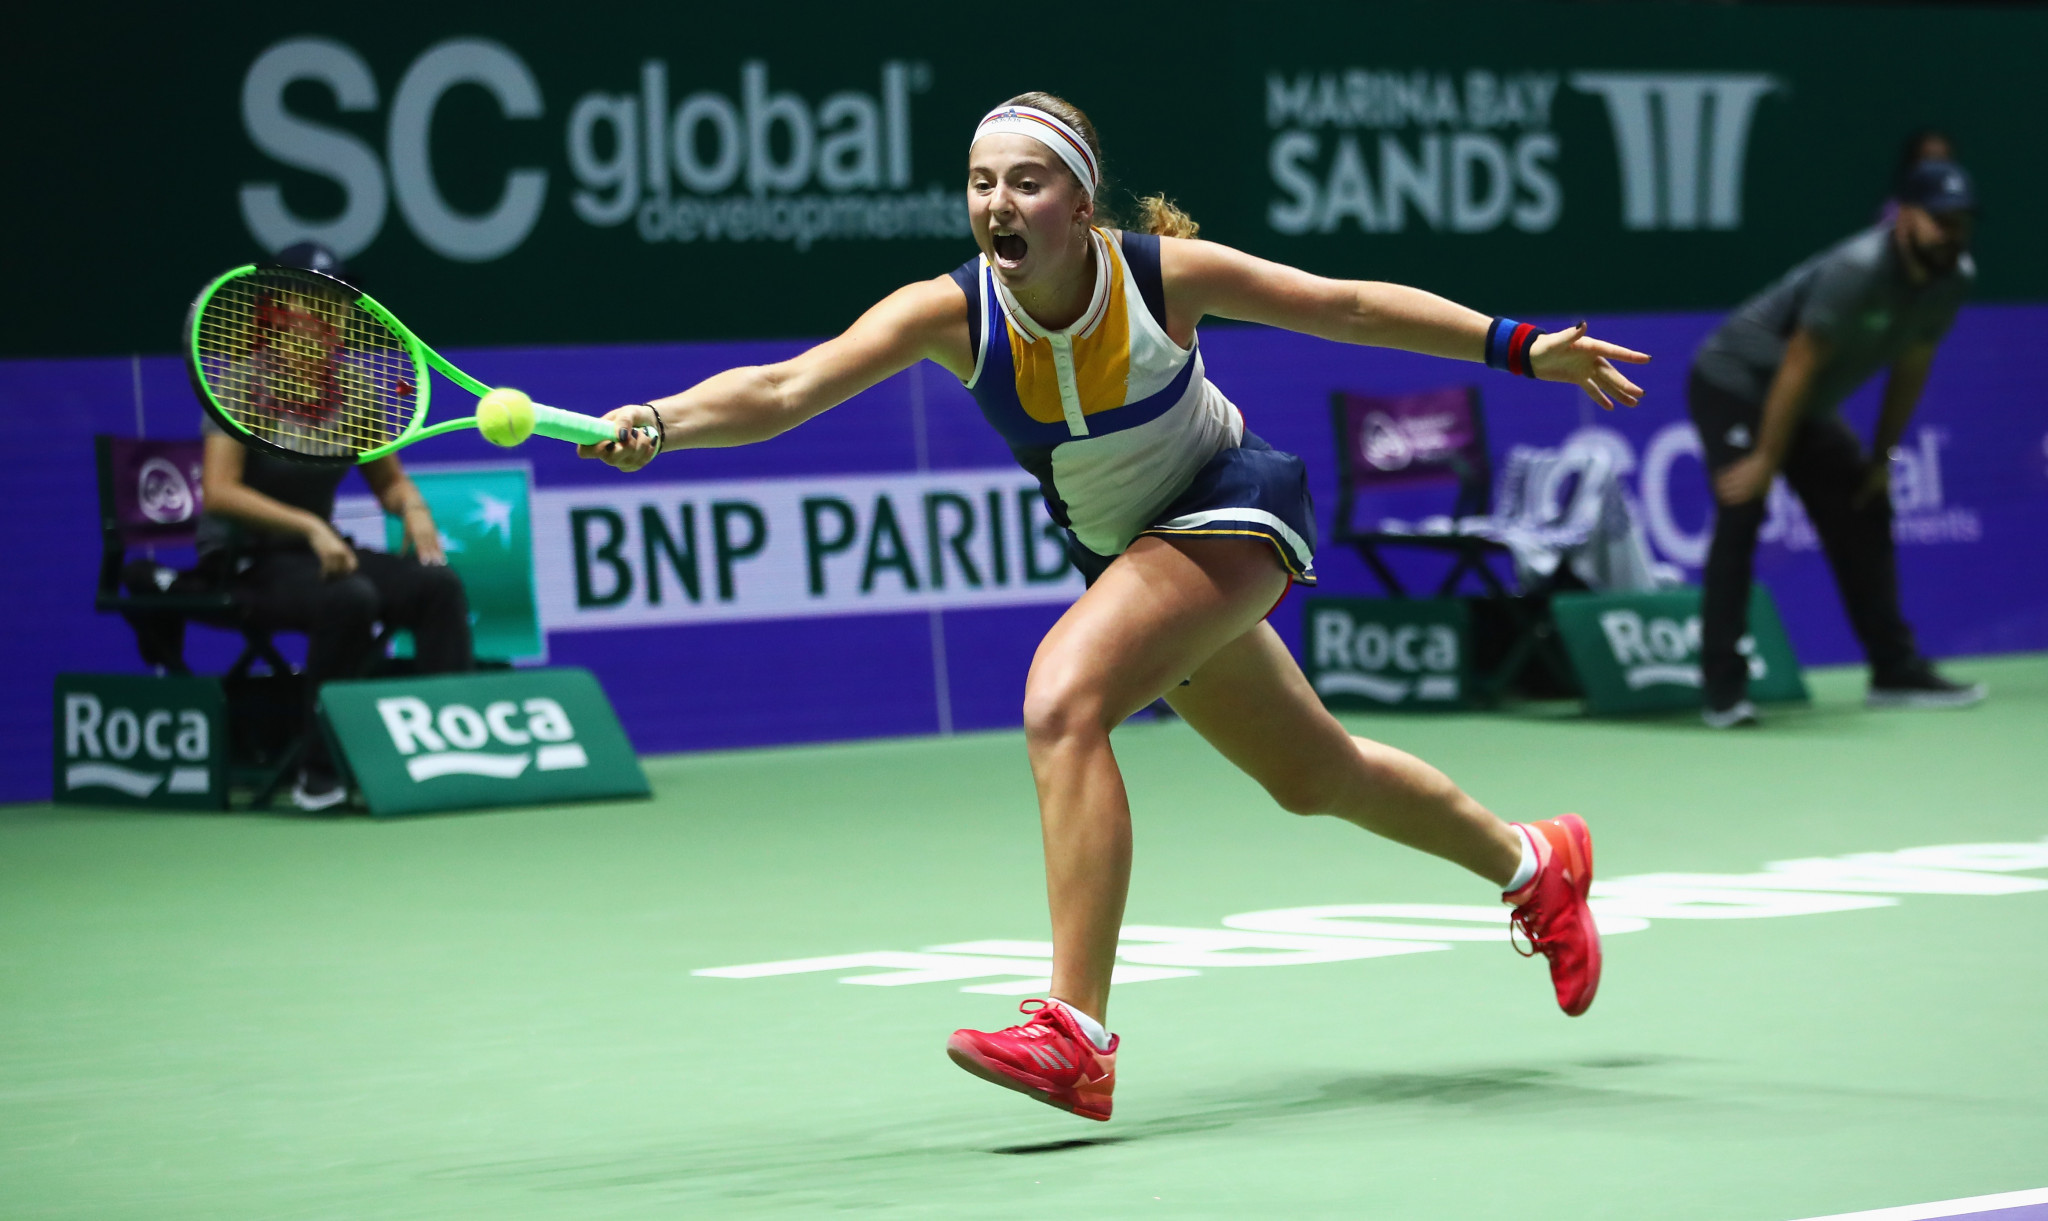 Jelena Ostapenko battled hard but lost in three tight sets ©Getty Images